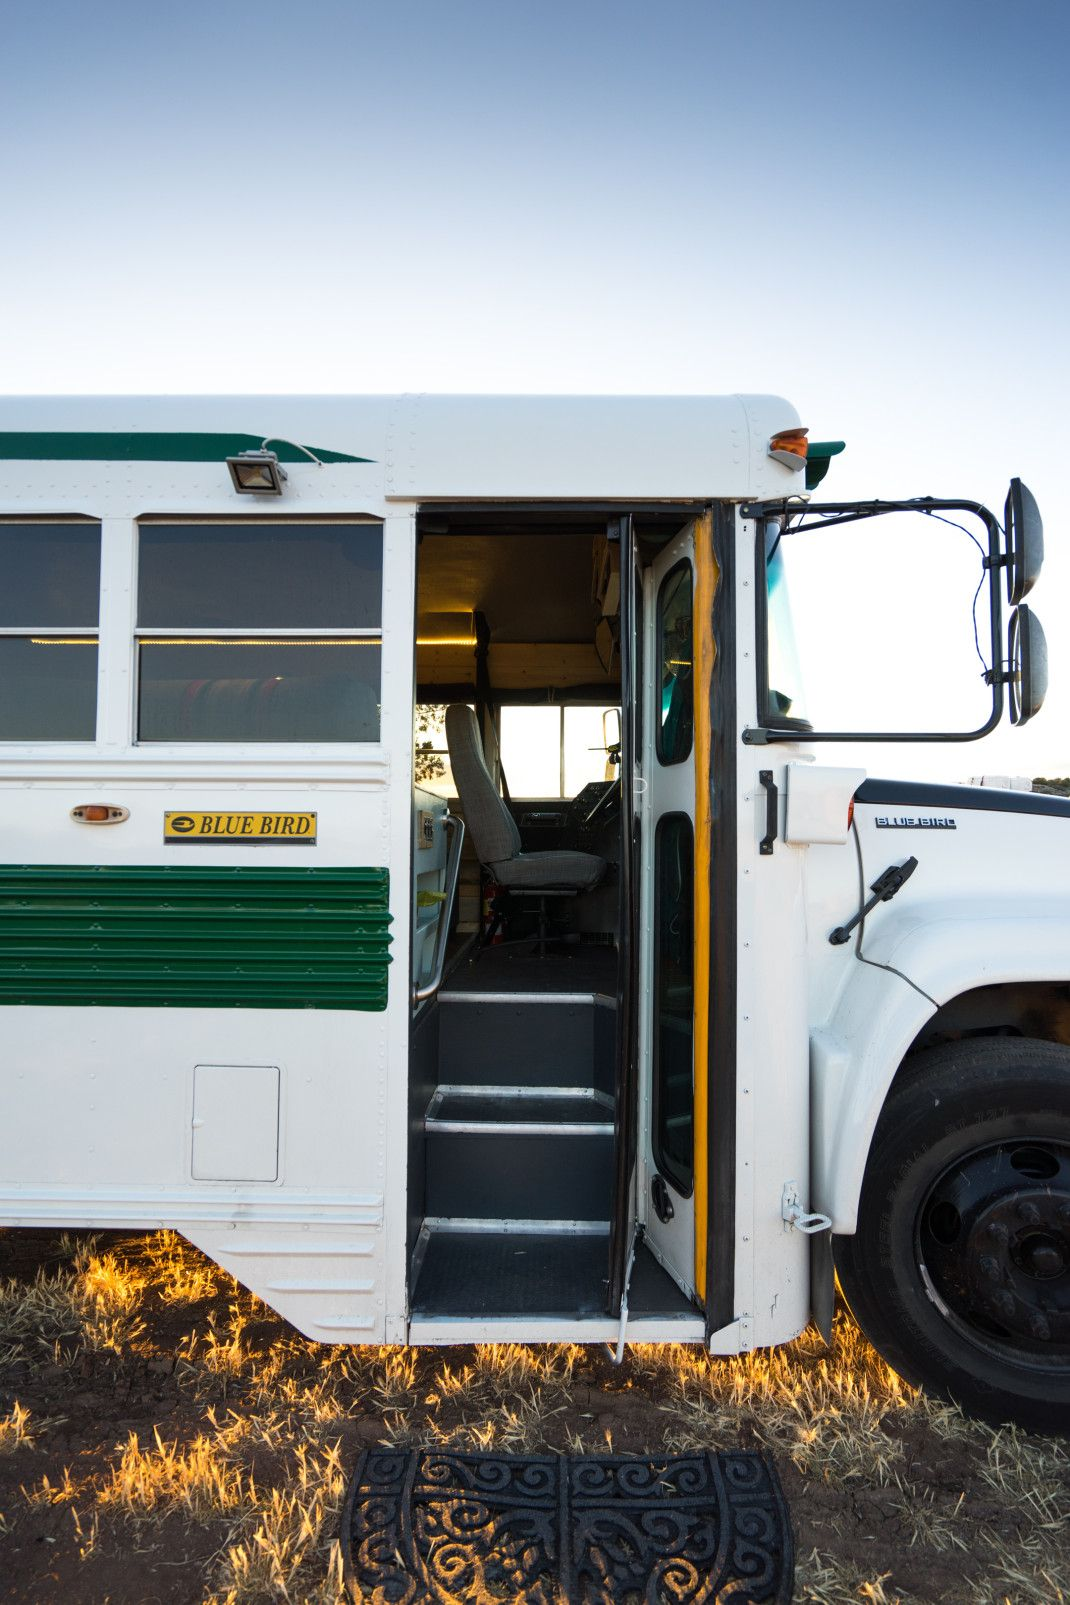 When the bus is stationary, this becomes the entryway